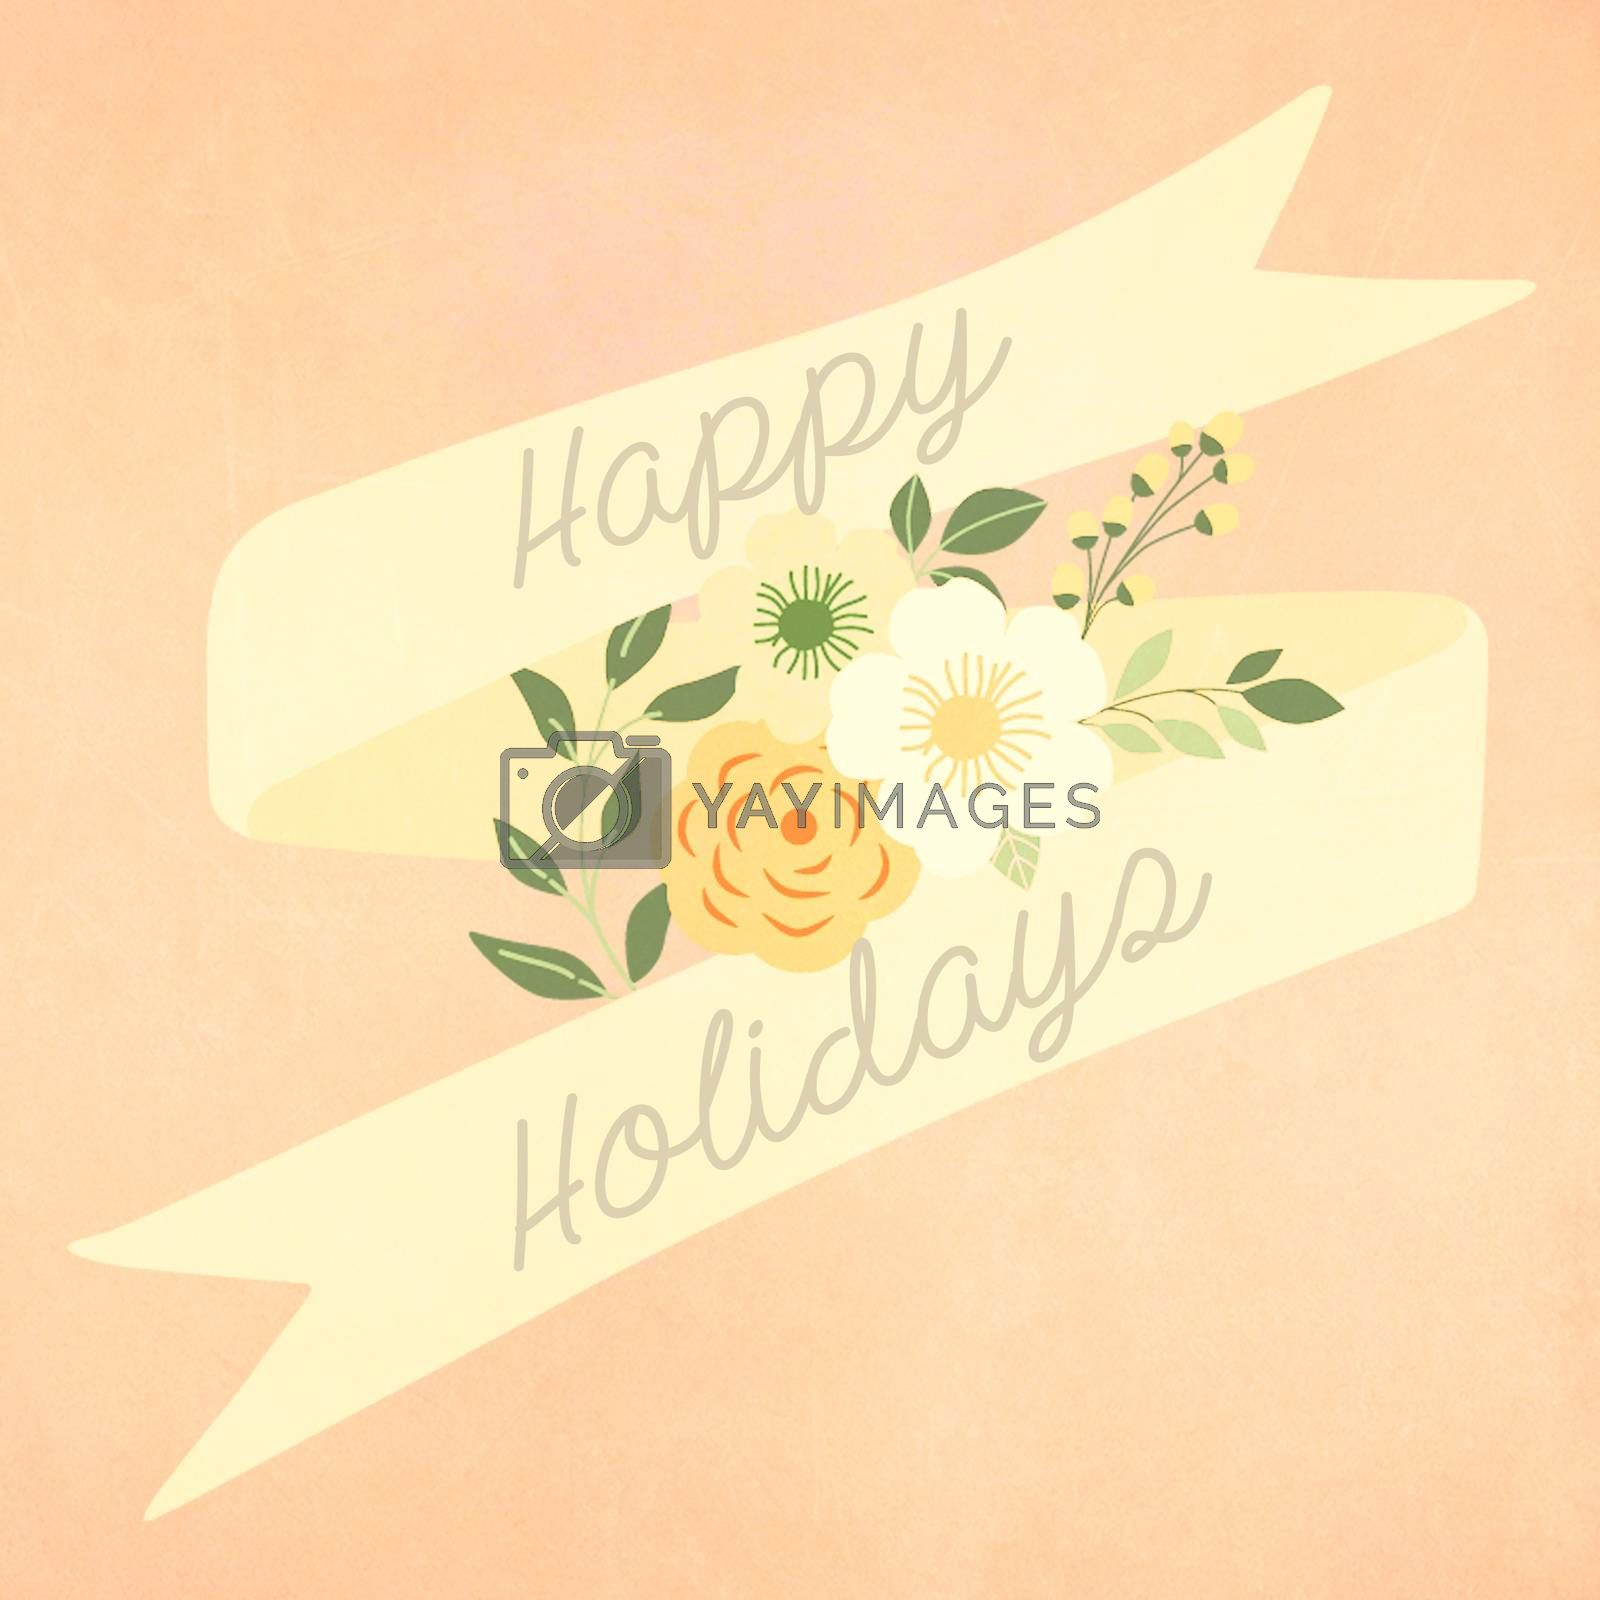 Happy holidays greeting card with retro vintage style